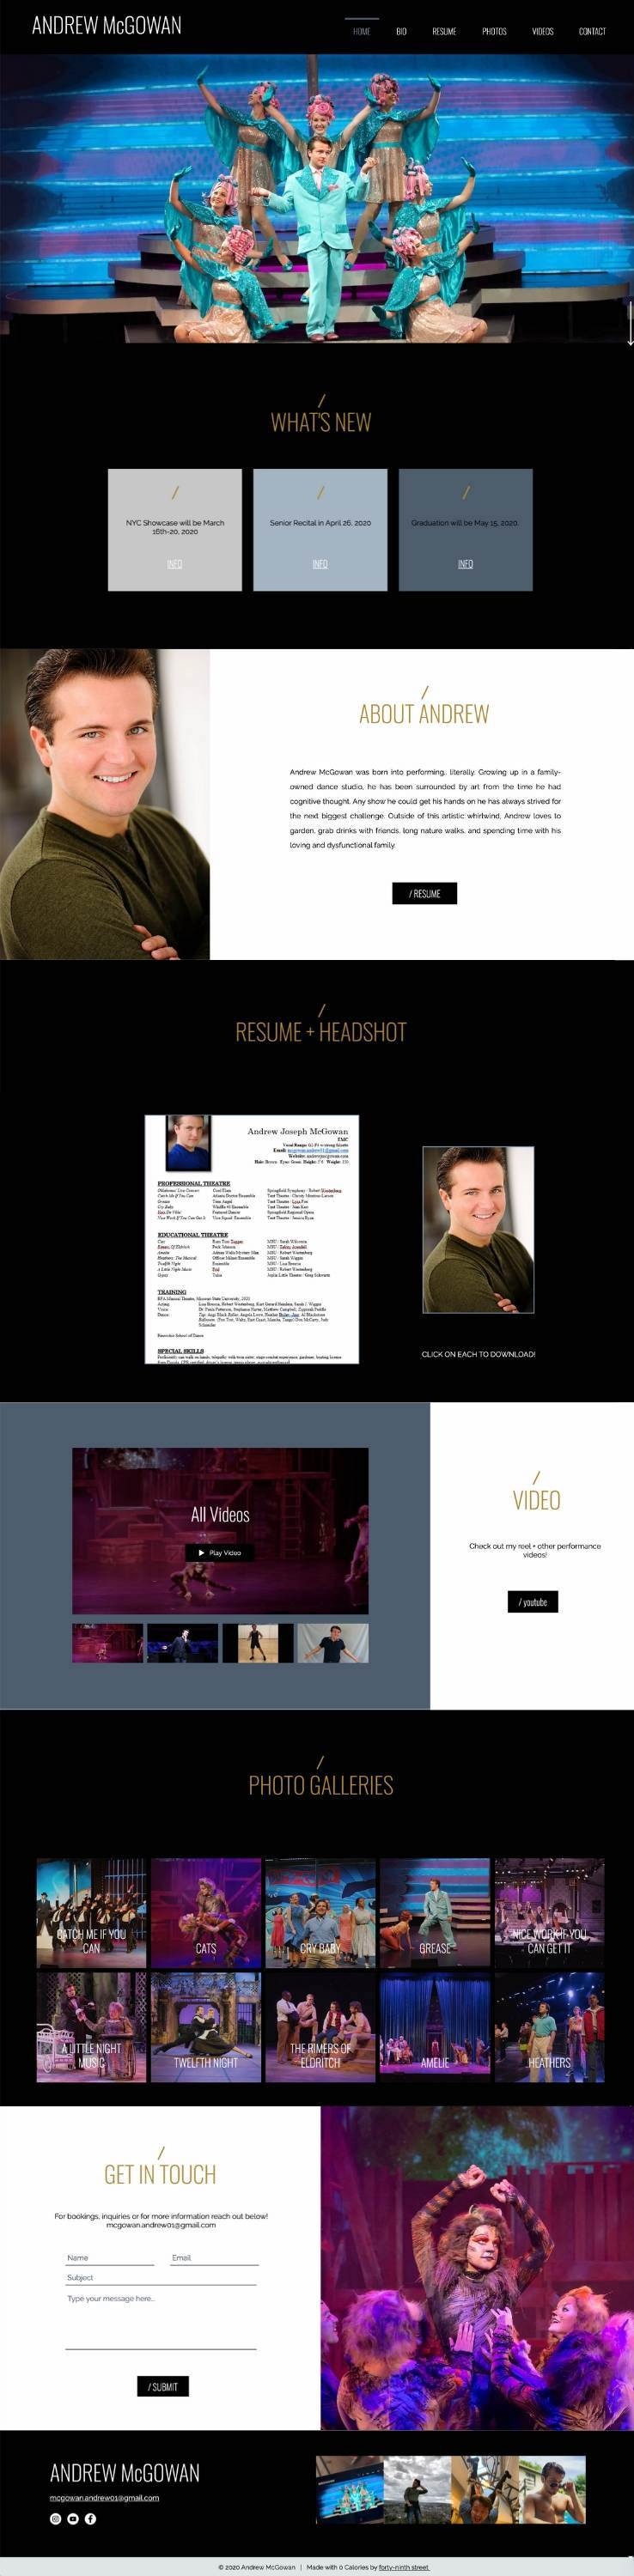 Wix website revamp for andrew mcgowan by bridgette karl of forty-ninth street